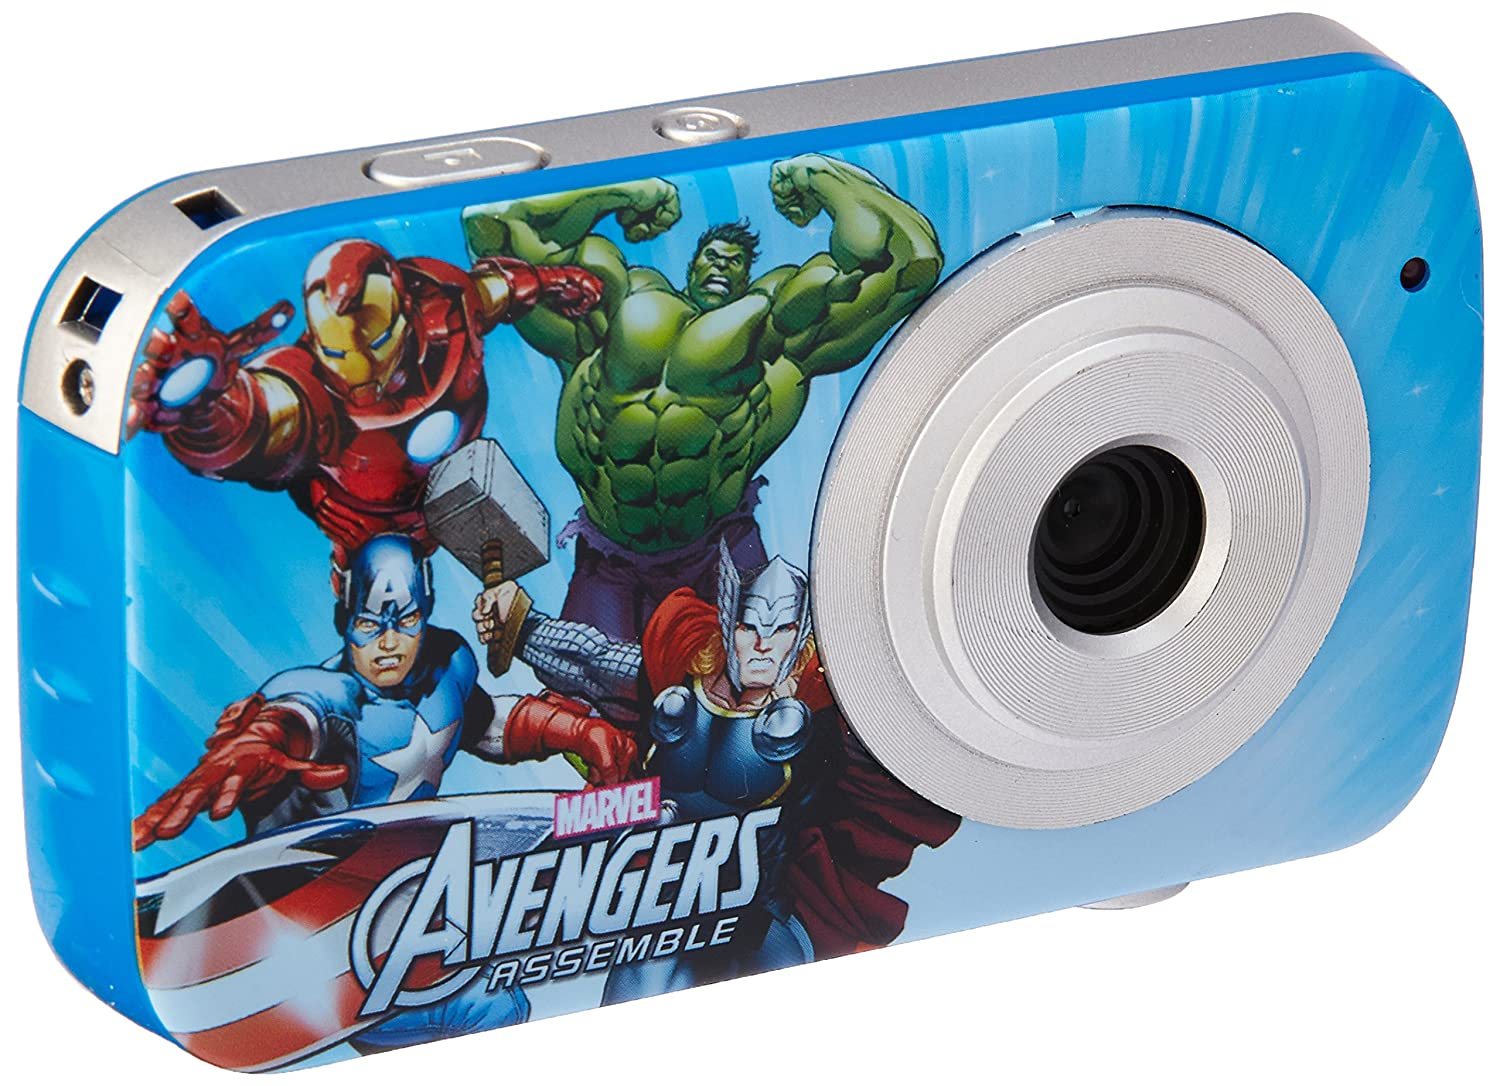 Marvel Avengers Digital Camera 81043-INT